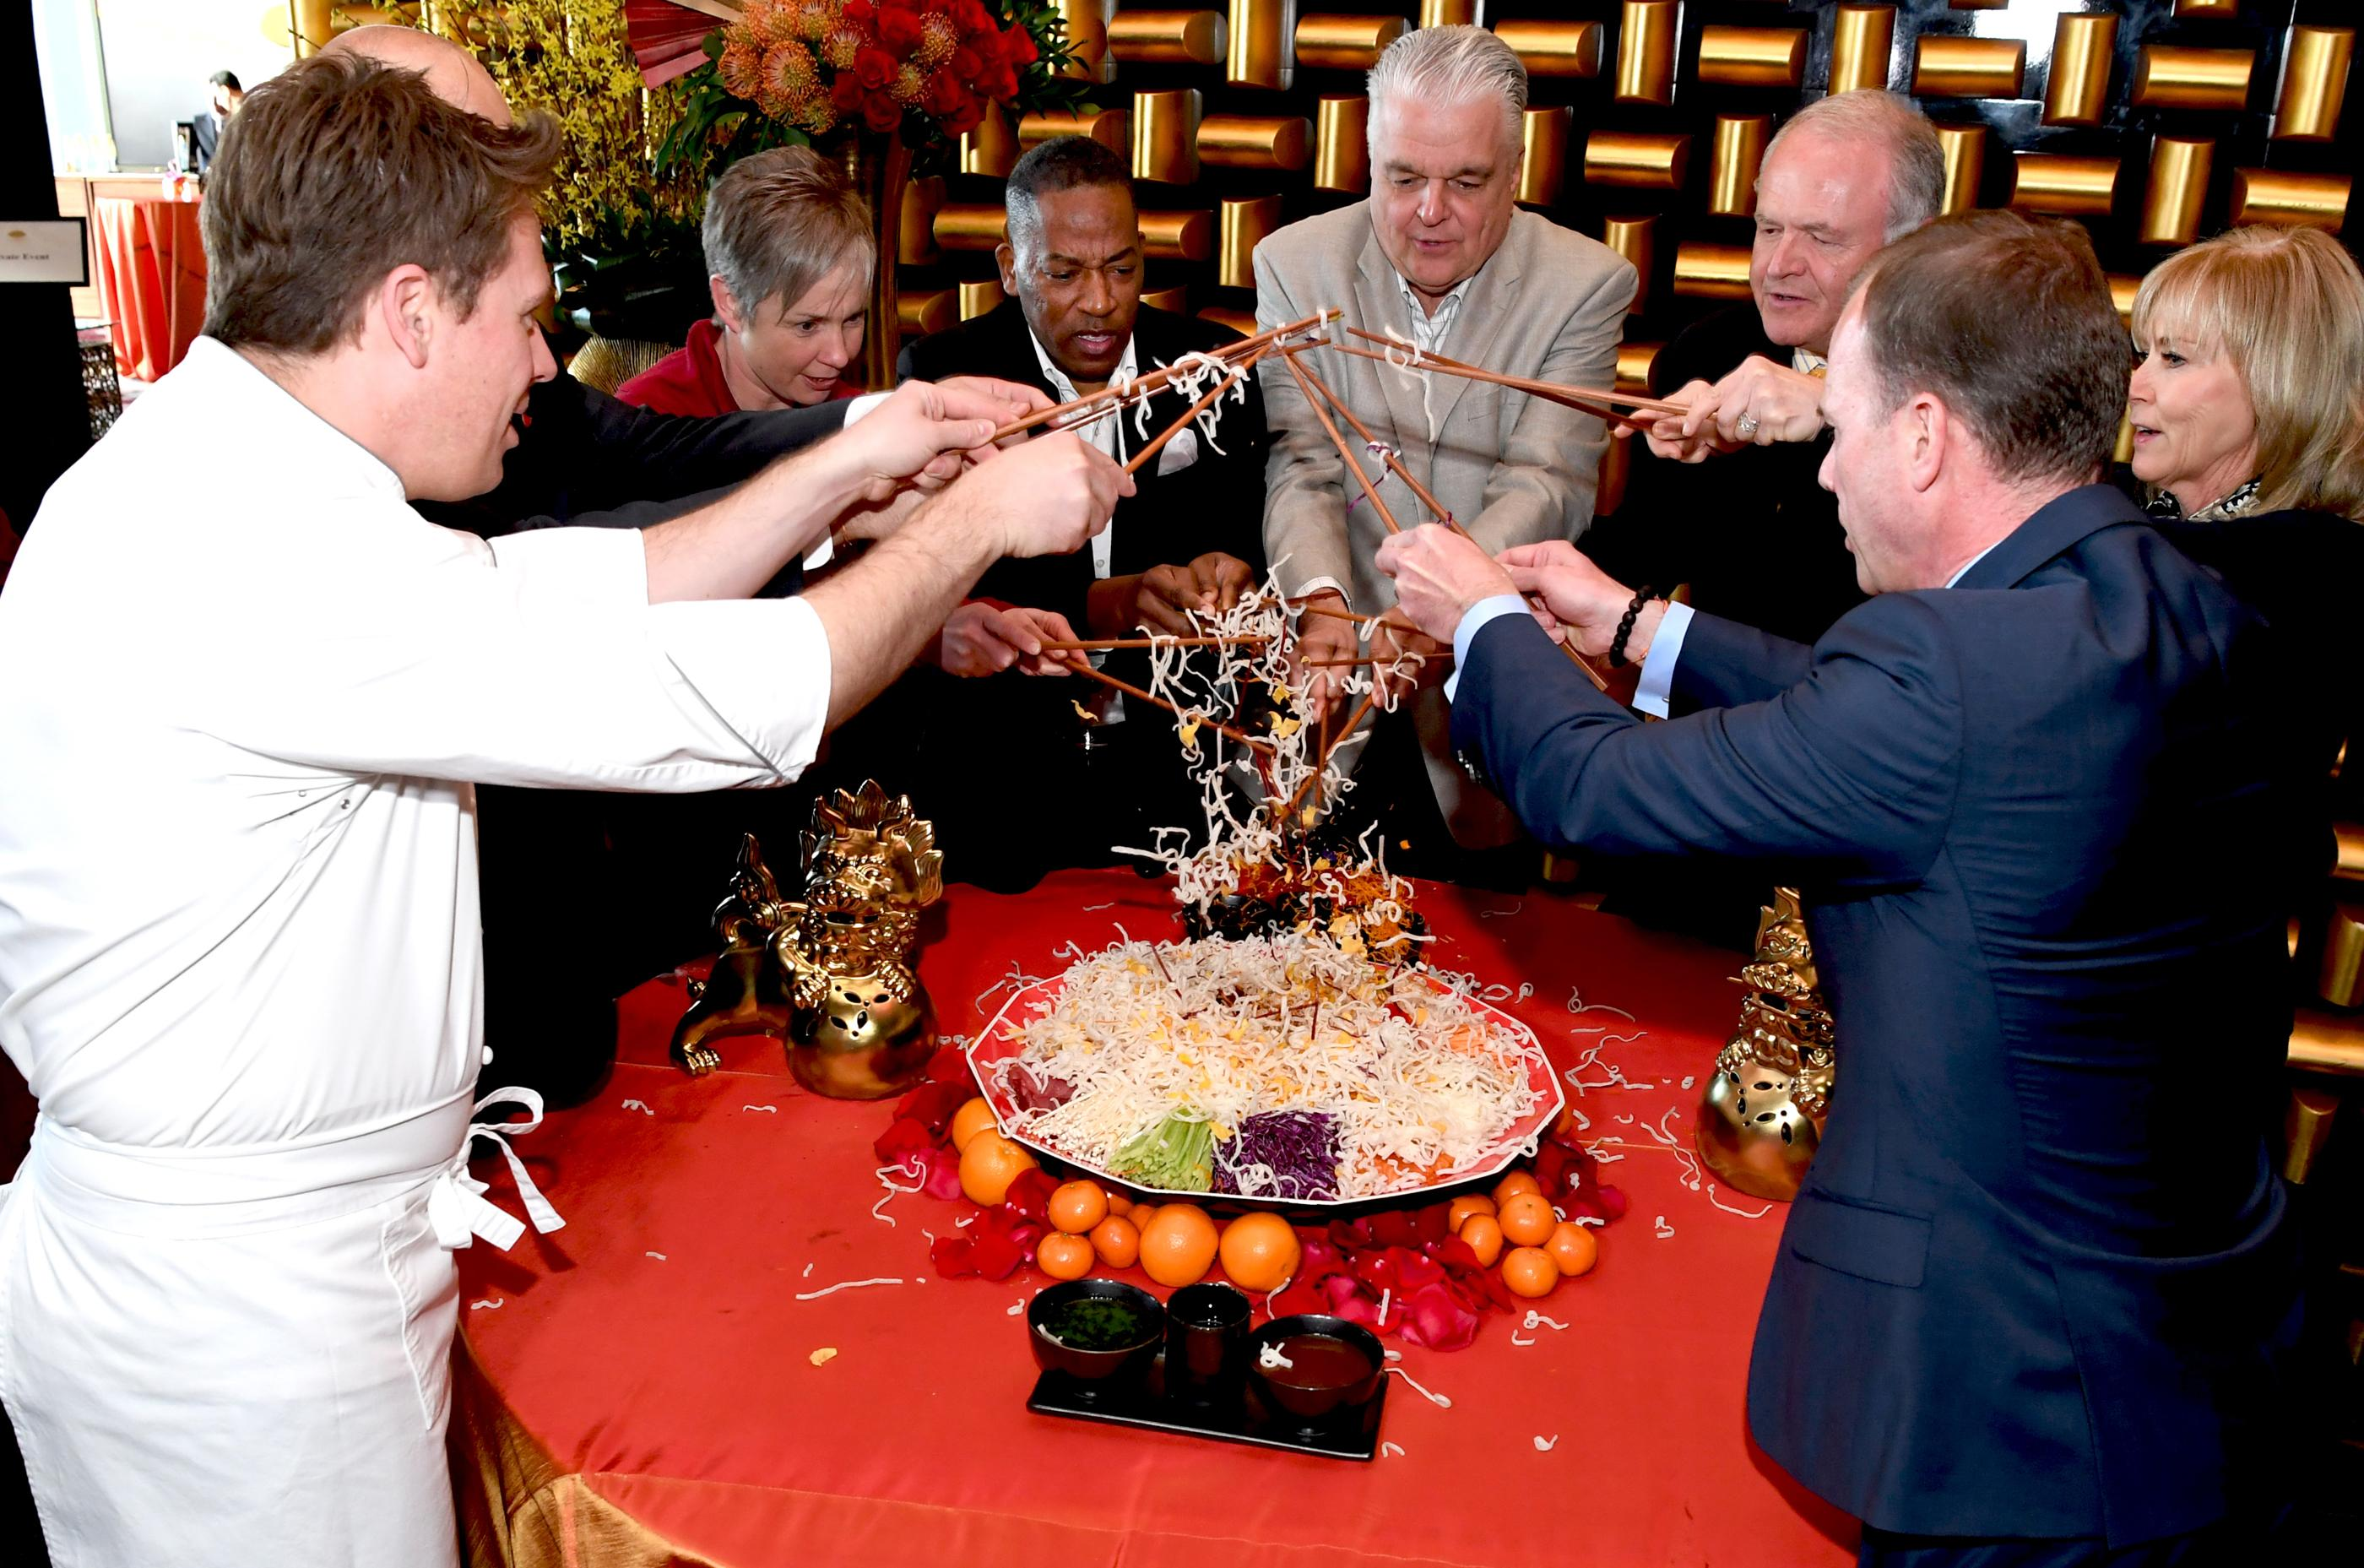 The Mandarin Oriental, Las Vegas celebrates the Chinese New Year, Year of the Dog with a special Yusheng Toss presentation. Pictured: (clockwise) David Werlyu (front left), Executive Chef Mandarin Oriental; Christopher Pageaud, Food and Beverage Director Mandarin Oriental; Ellen Charnley, wife of Donald Bowman; Lawrence Weekly, Clark County Commissioner; Steve Sisolak, Clark County Commissioner; Peter Sadowski, Executive Vice President and Chief Legal Officer for Vegas Golden Knights; Denise Decker-Sadowski, wife of Peter Sadowski; and Donald Bowman, General Manager Mandarin Oriental. Thursday, February 15, 2018. CREDIT: Glenn Pinkerton/Las Vegas News Bureau